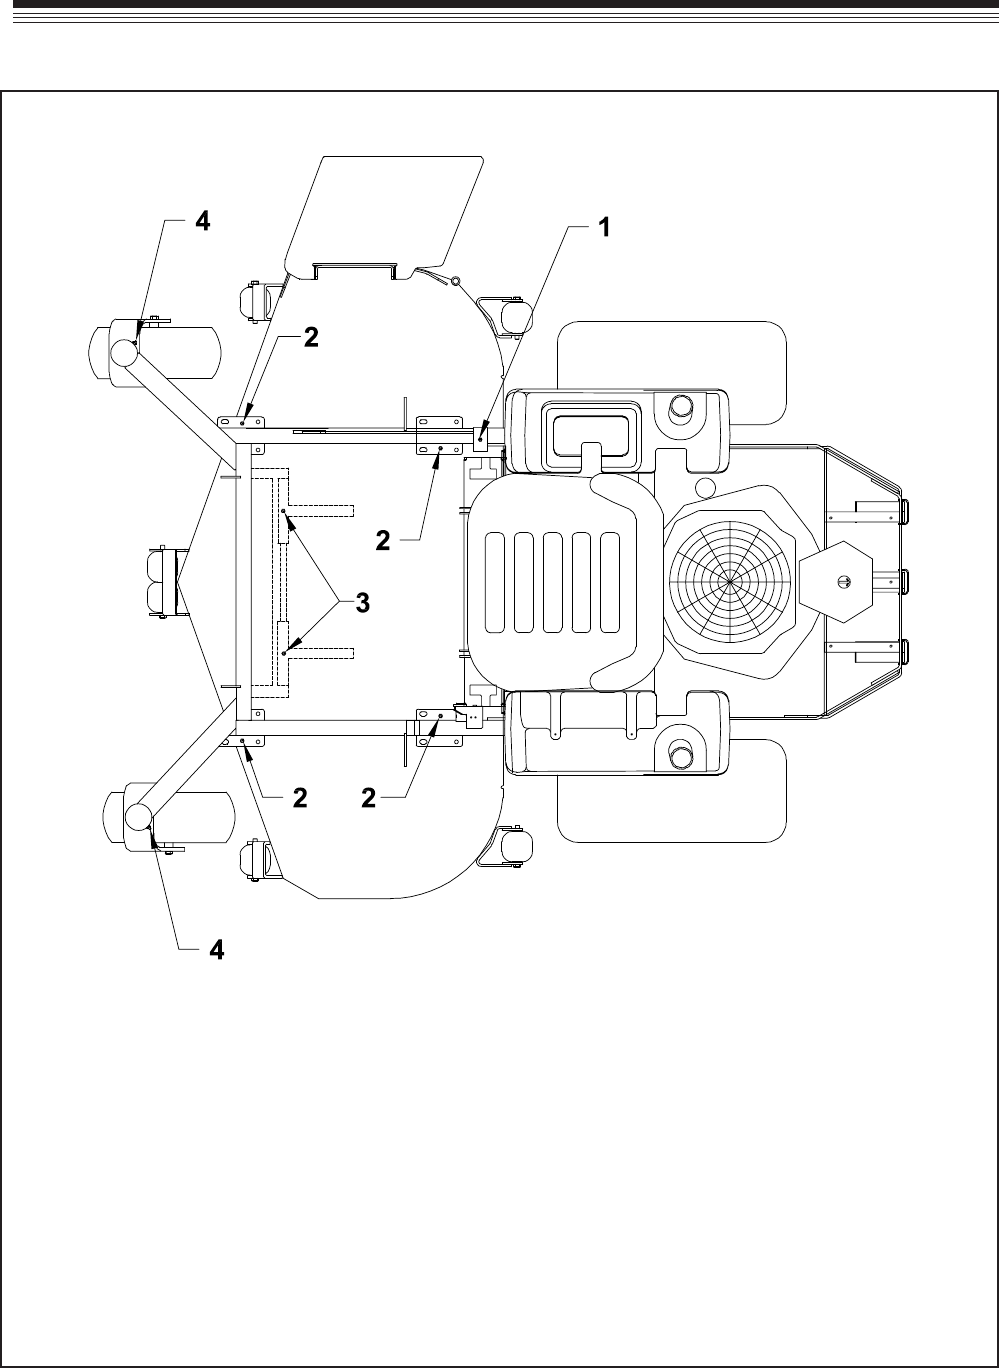 Page 27 of Craftsman Lawn Mower 127.28875 User Guide